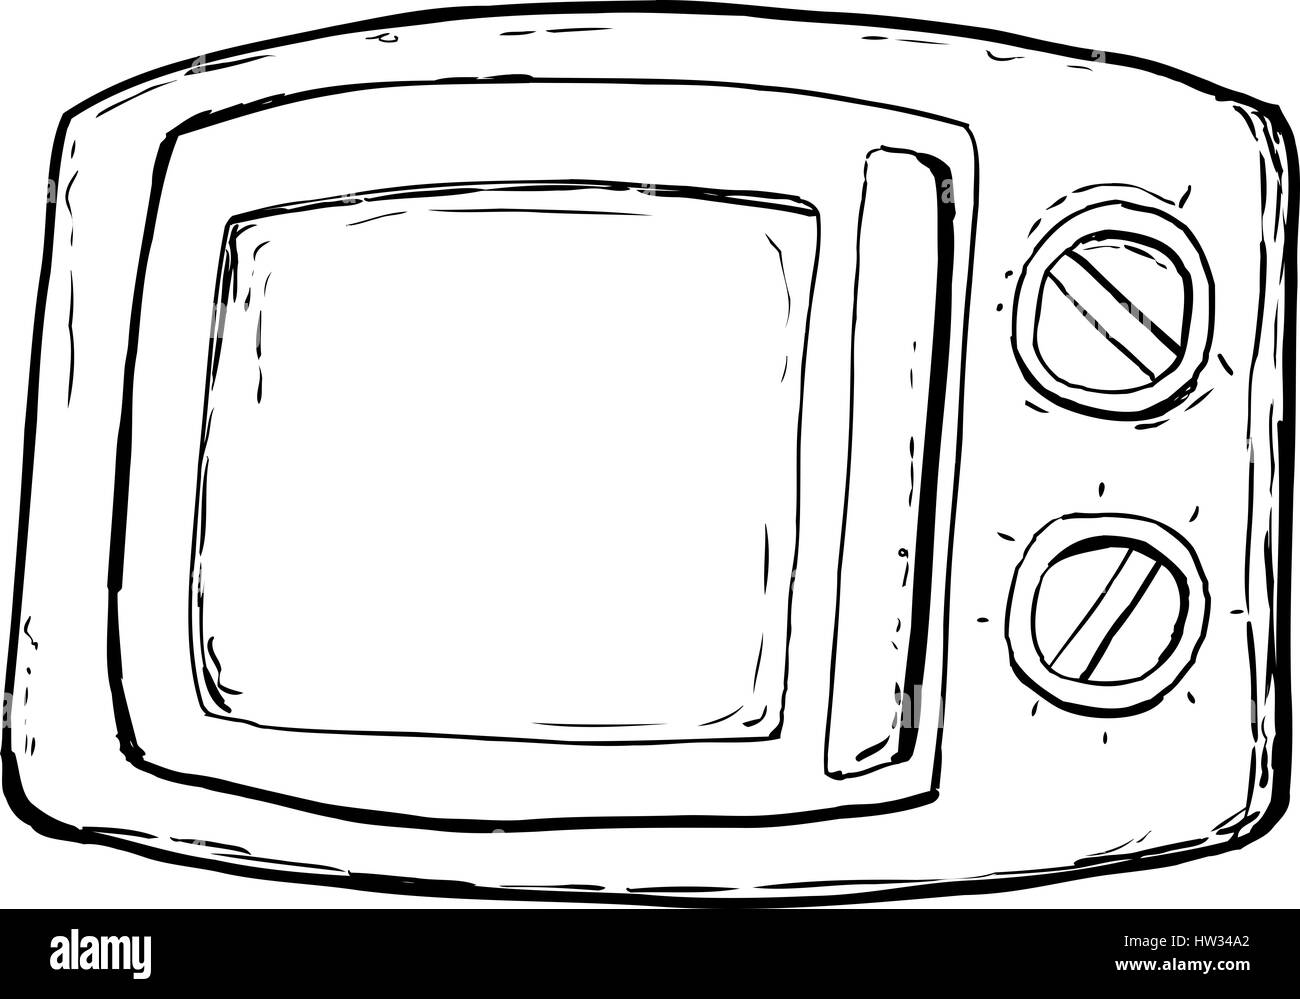 closed door clipart. Outlined Microwave Oven With Closed Door And Control Dials Over White Background - Stock Image Clipart 0